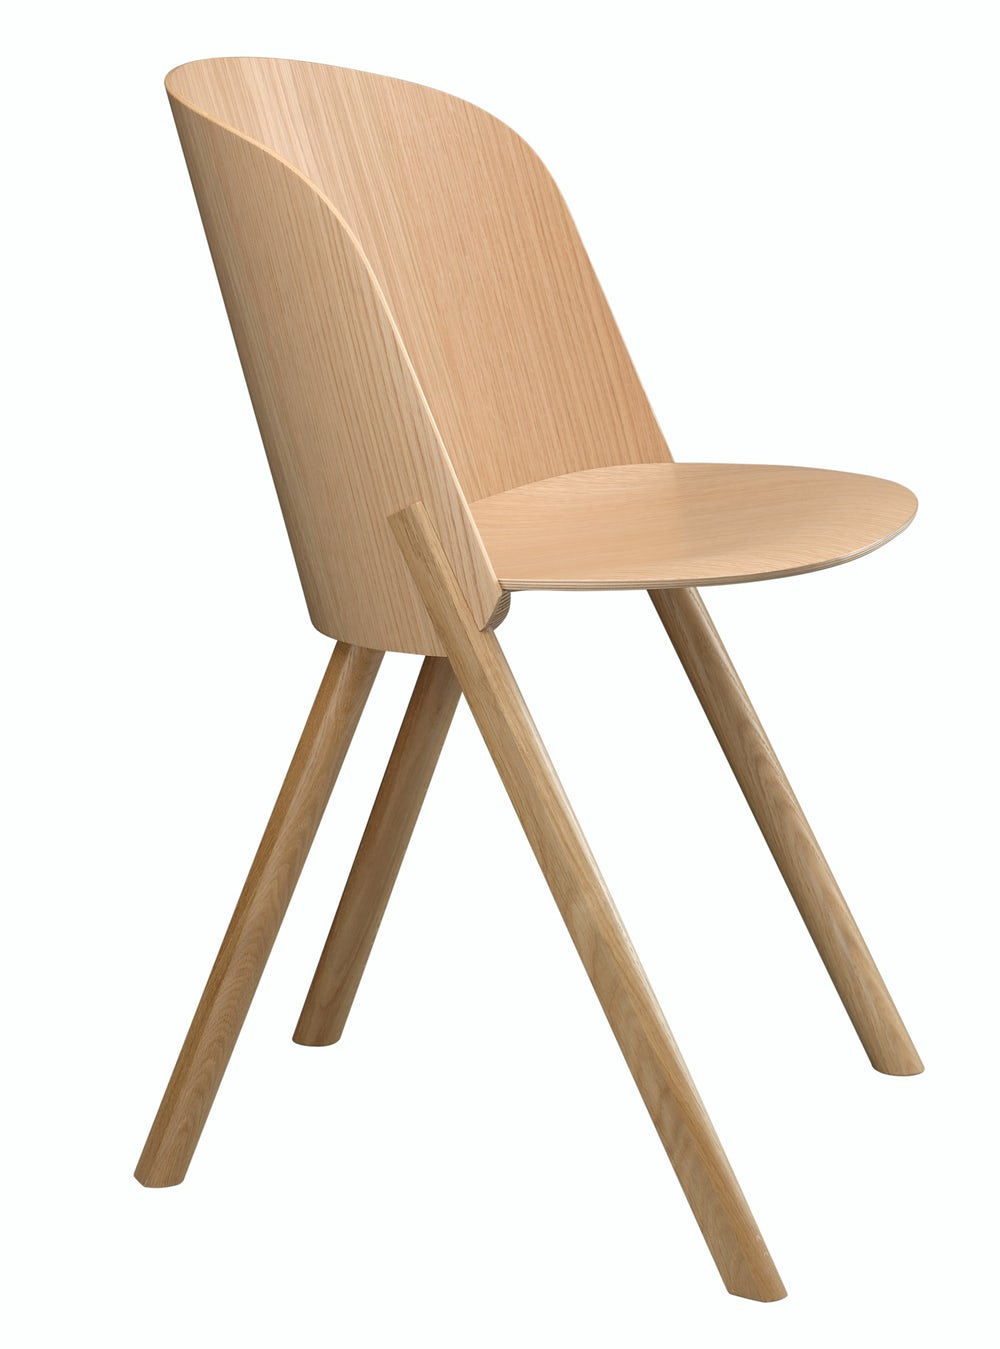 e15 this side chair in oak veneer